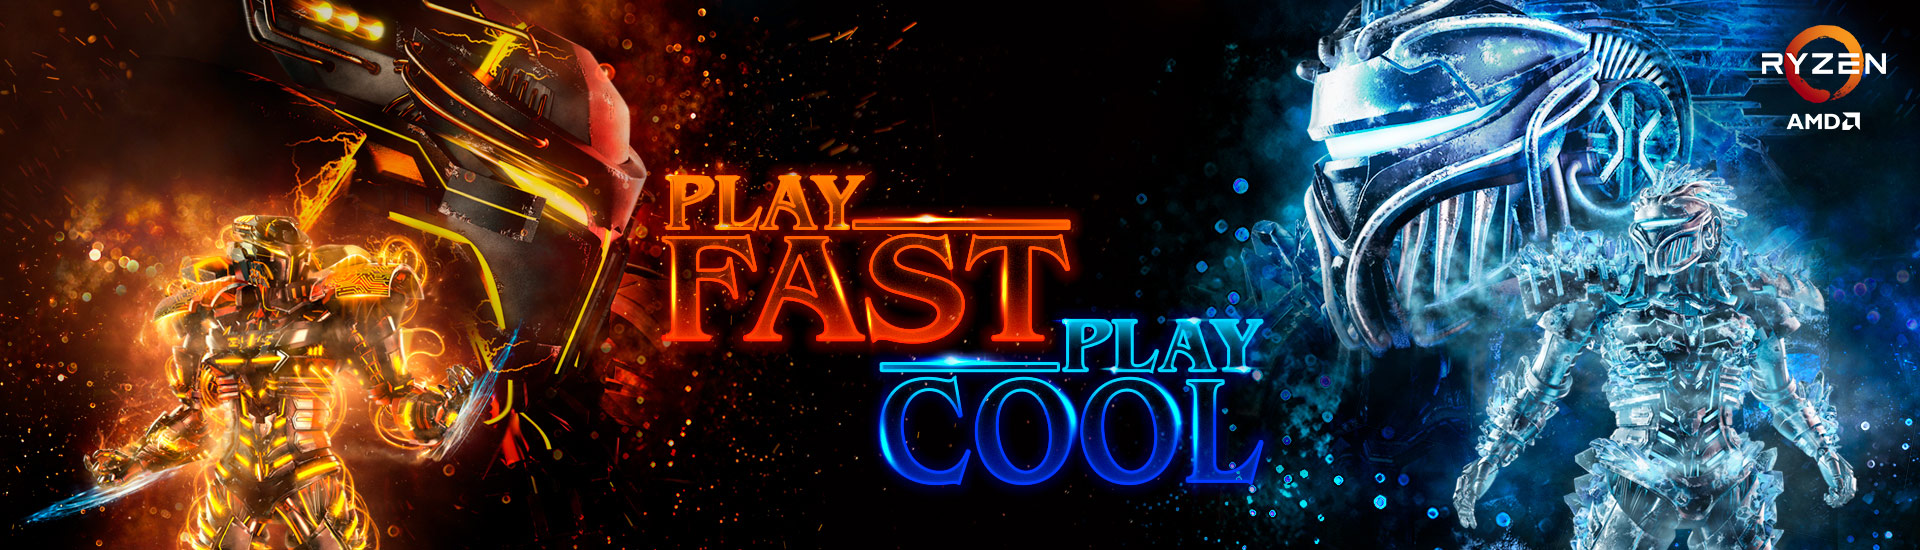 X570_PlayFast_PlayCool_PC_KV